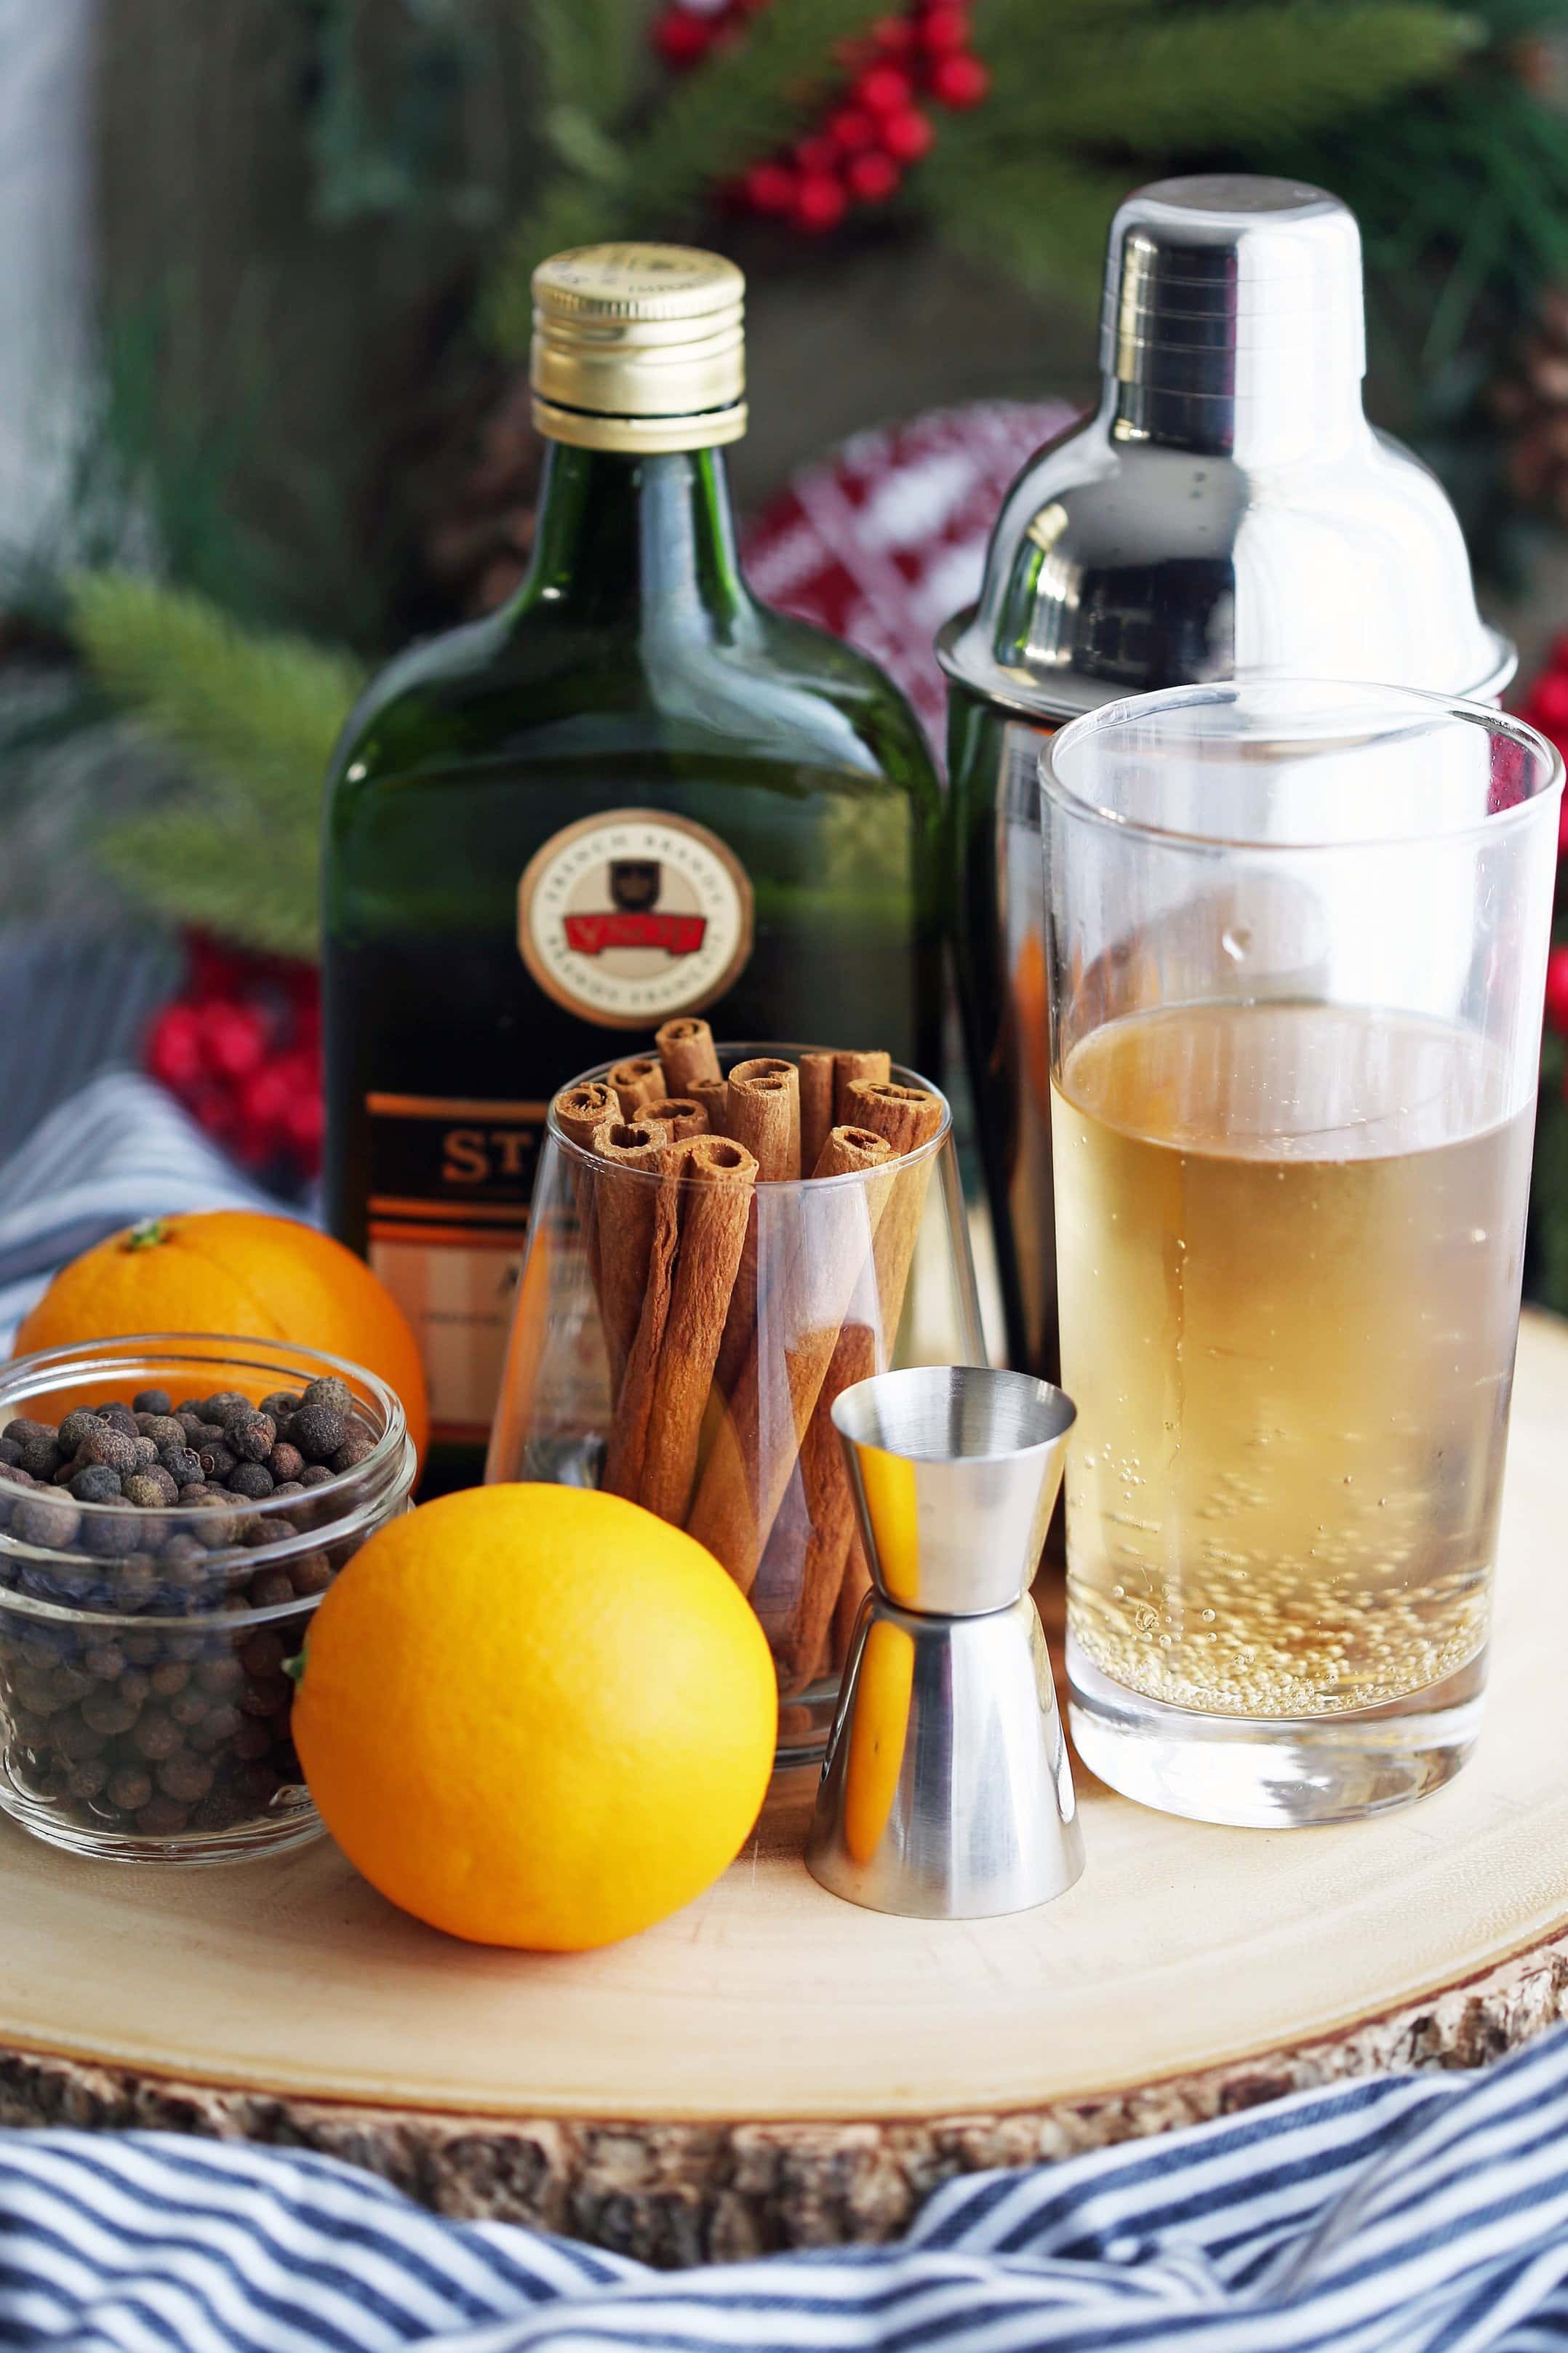 Whole allspice berries, cinnamon sticks, a bottle of Brandy, an orange, a glass of ginger ale, and a cocktail shaker on a wooden platter.